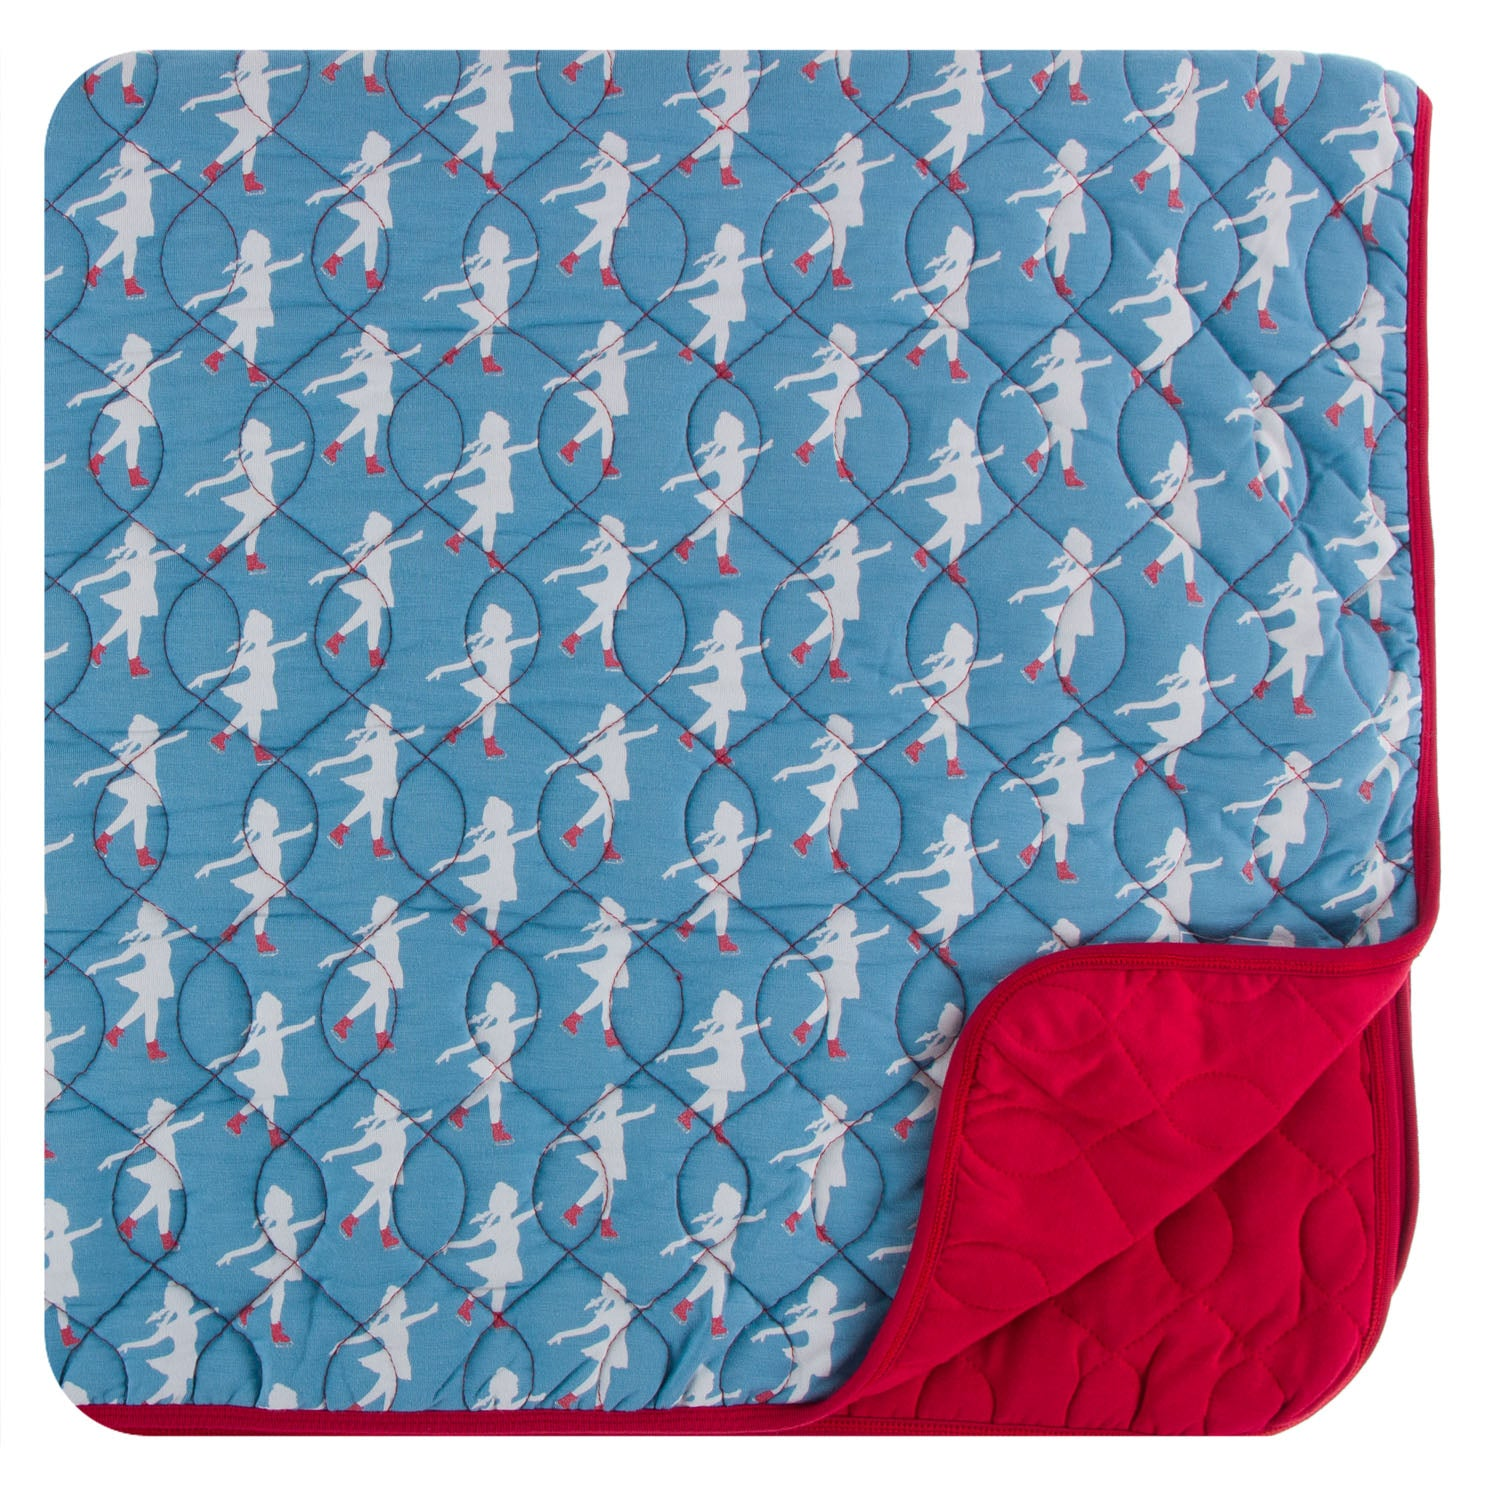 KicKee Pants Toddler Blanket